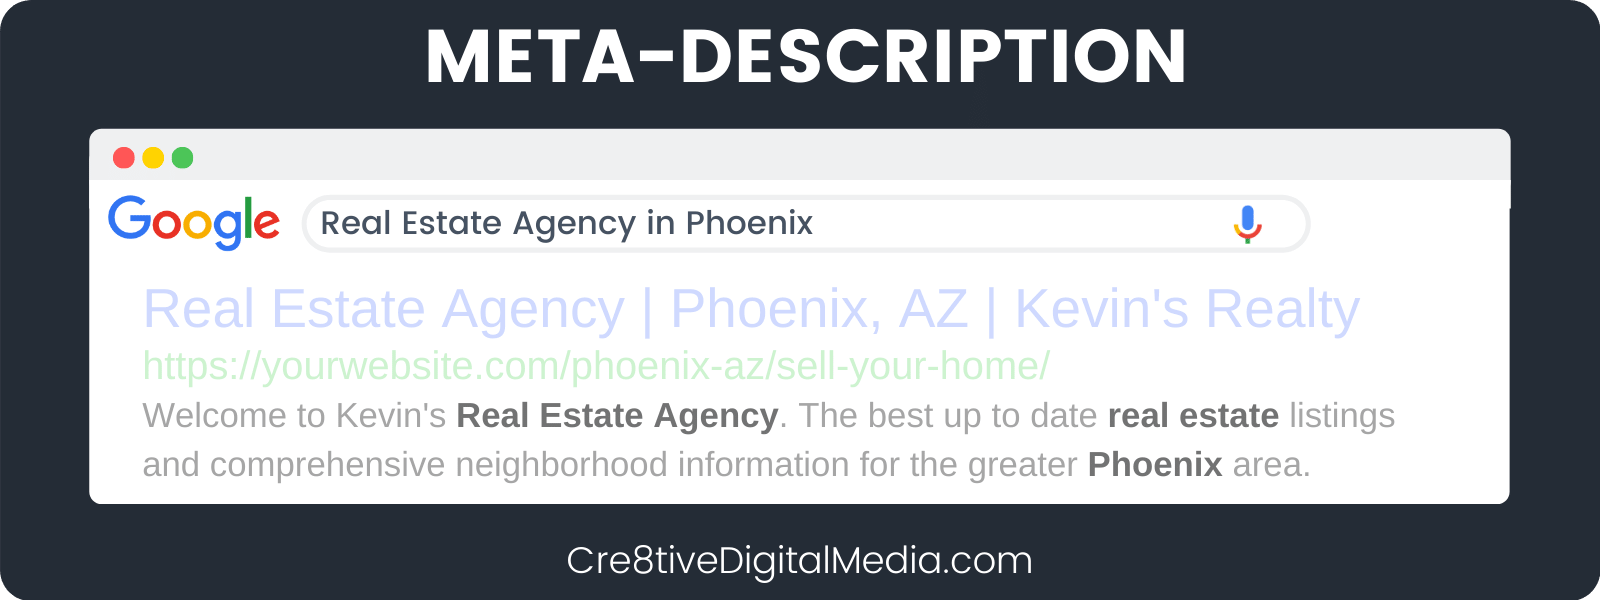 Meta-Description with Keywords + Location Bold